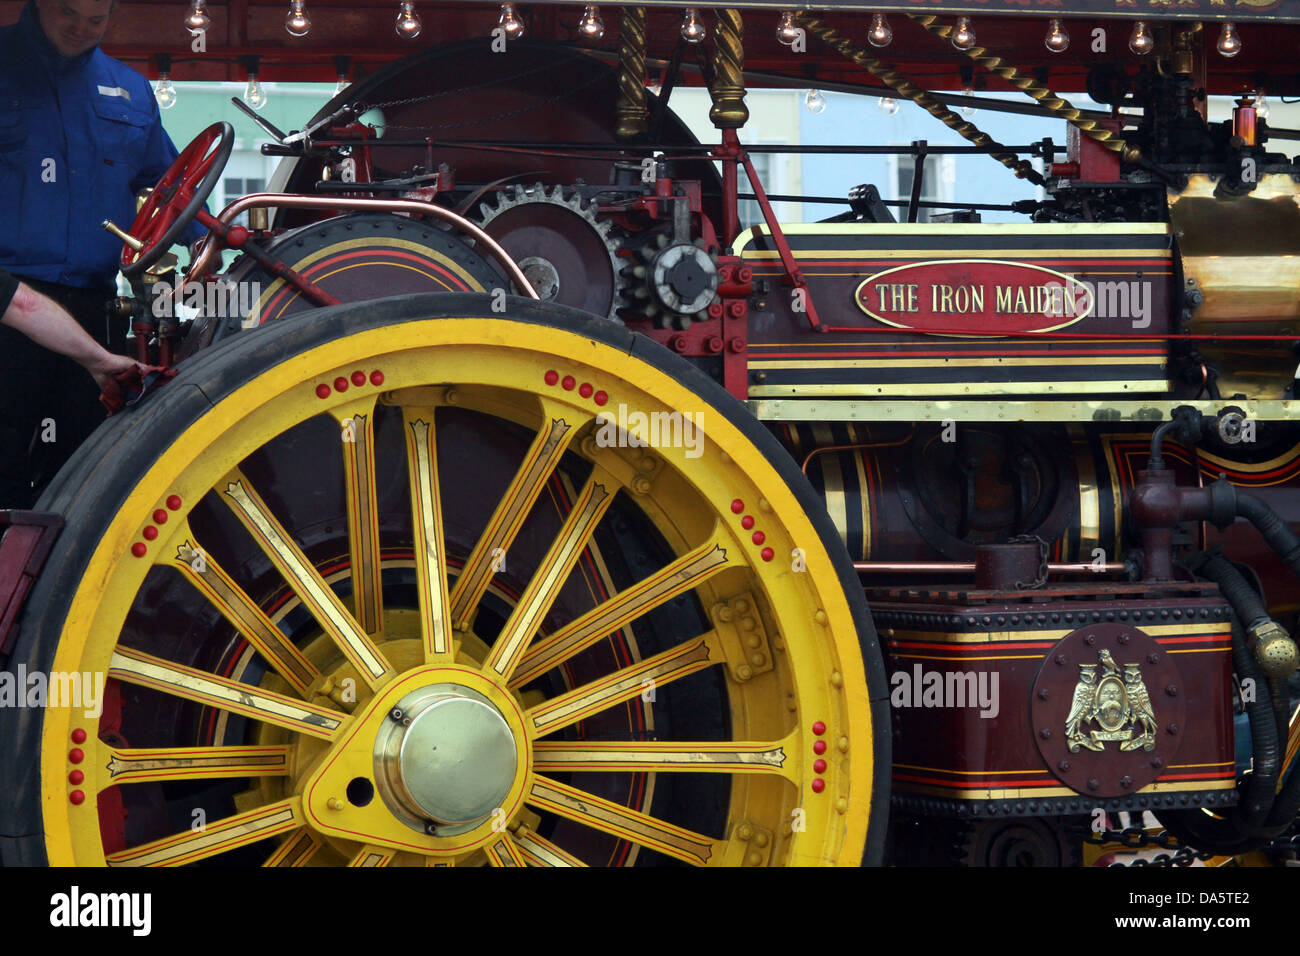 Showman's road locomotive or showman's engine  Iron Maiden - Stock Image